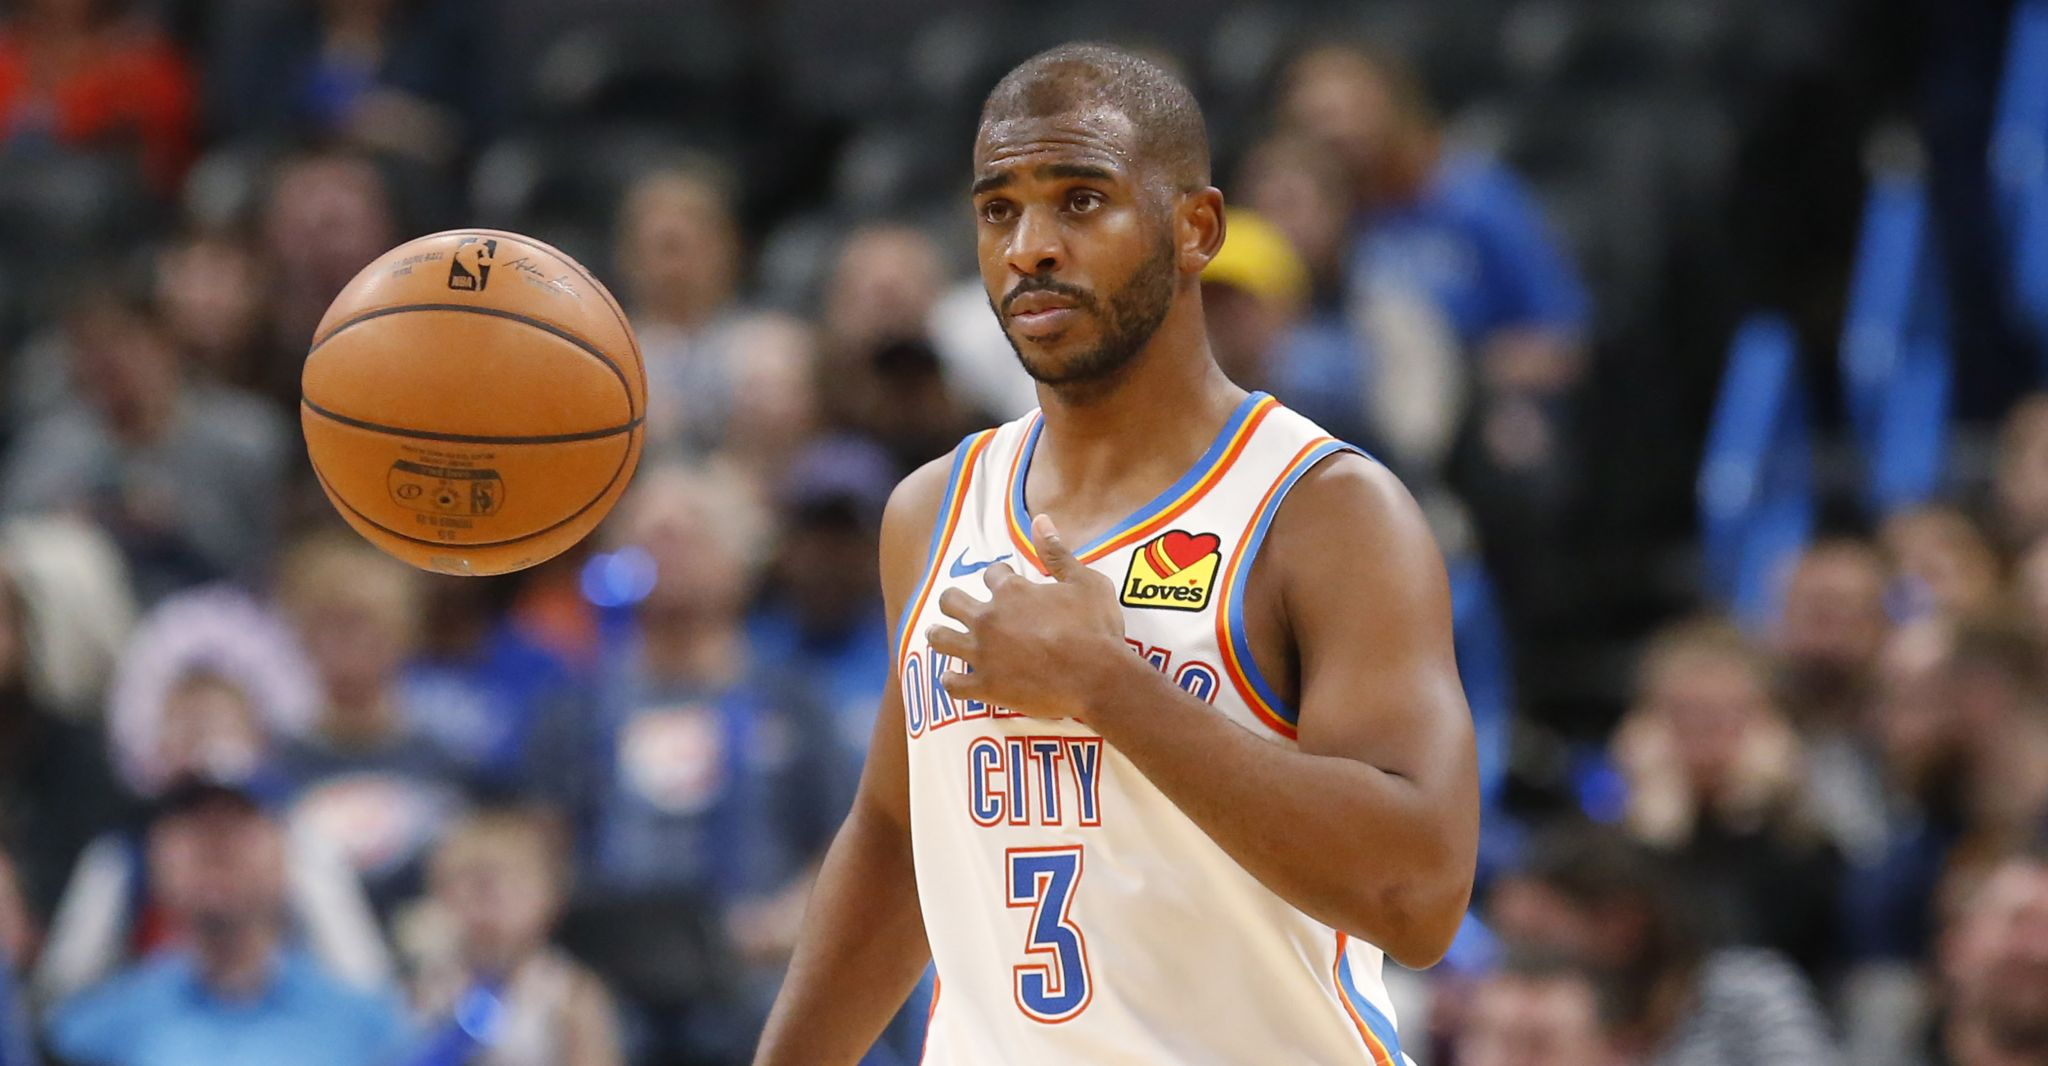 No surprise Chris Paul saw an untucked shirt to win a game